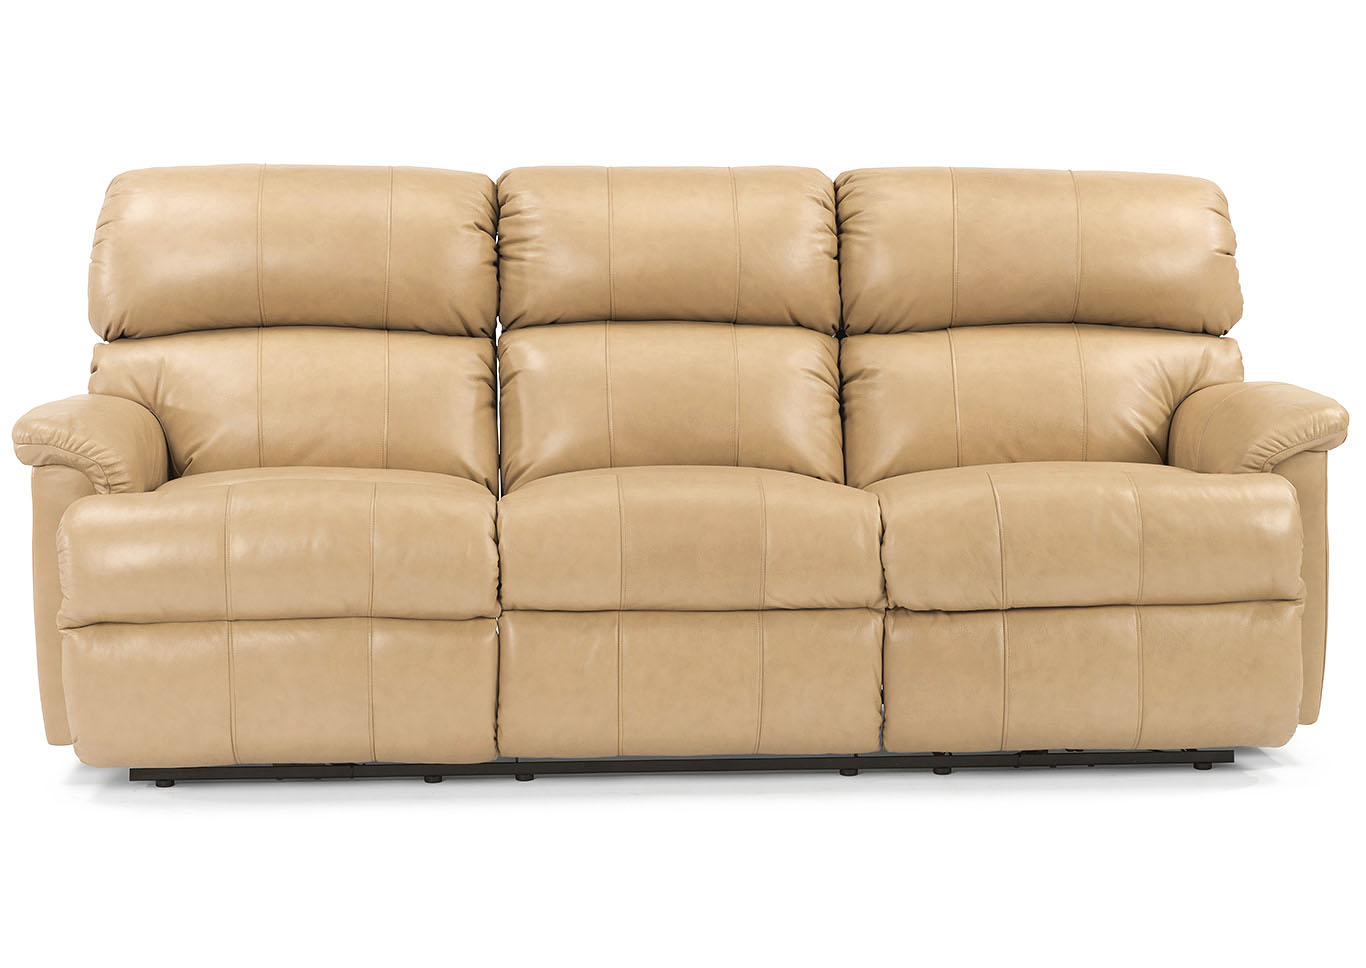 V. Watts Furniture Chicago Leather Reclining Sofa